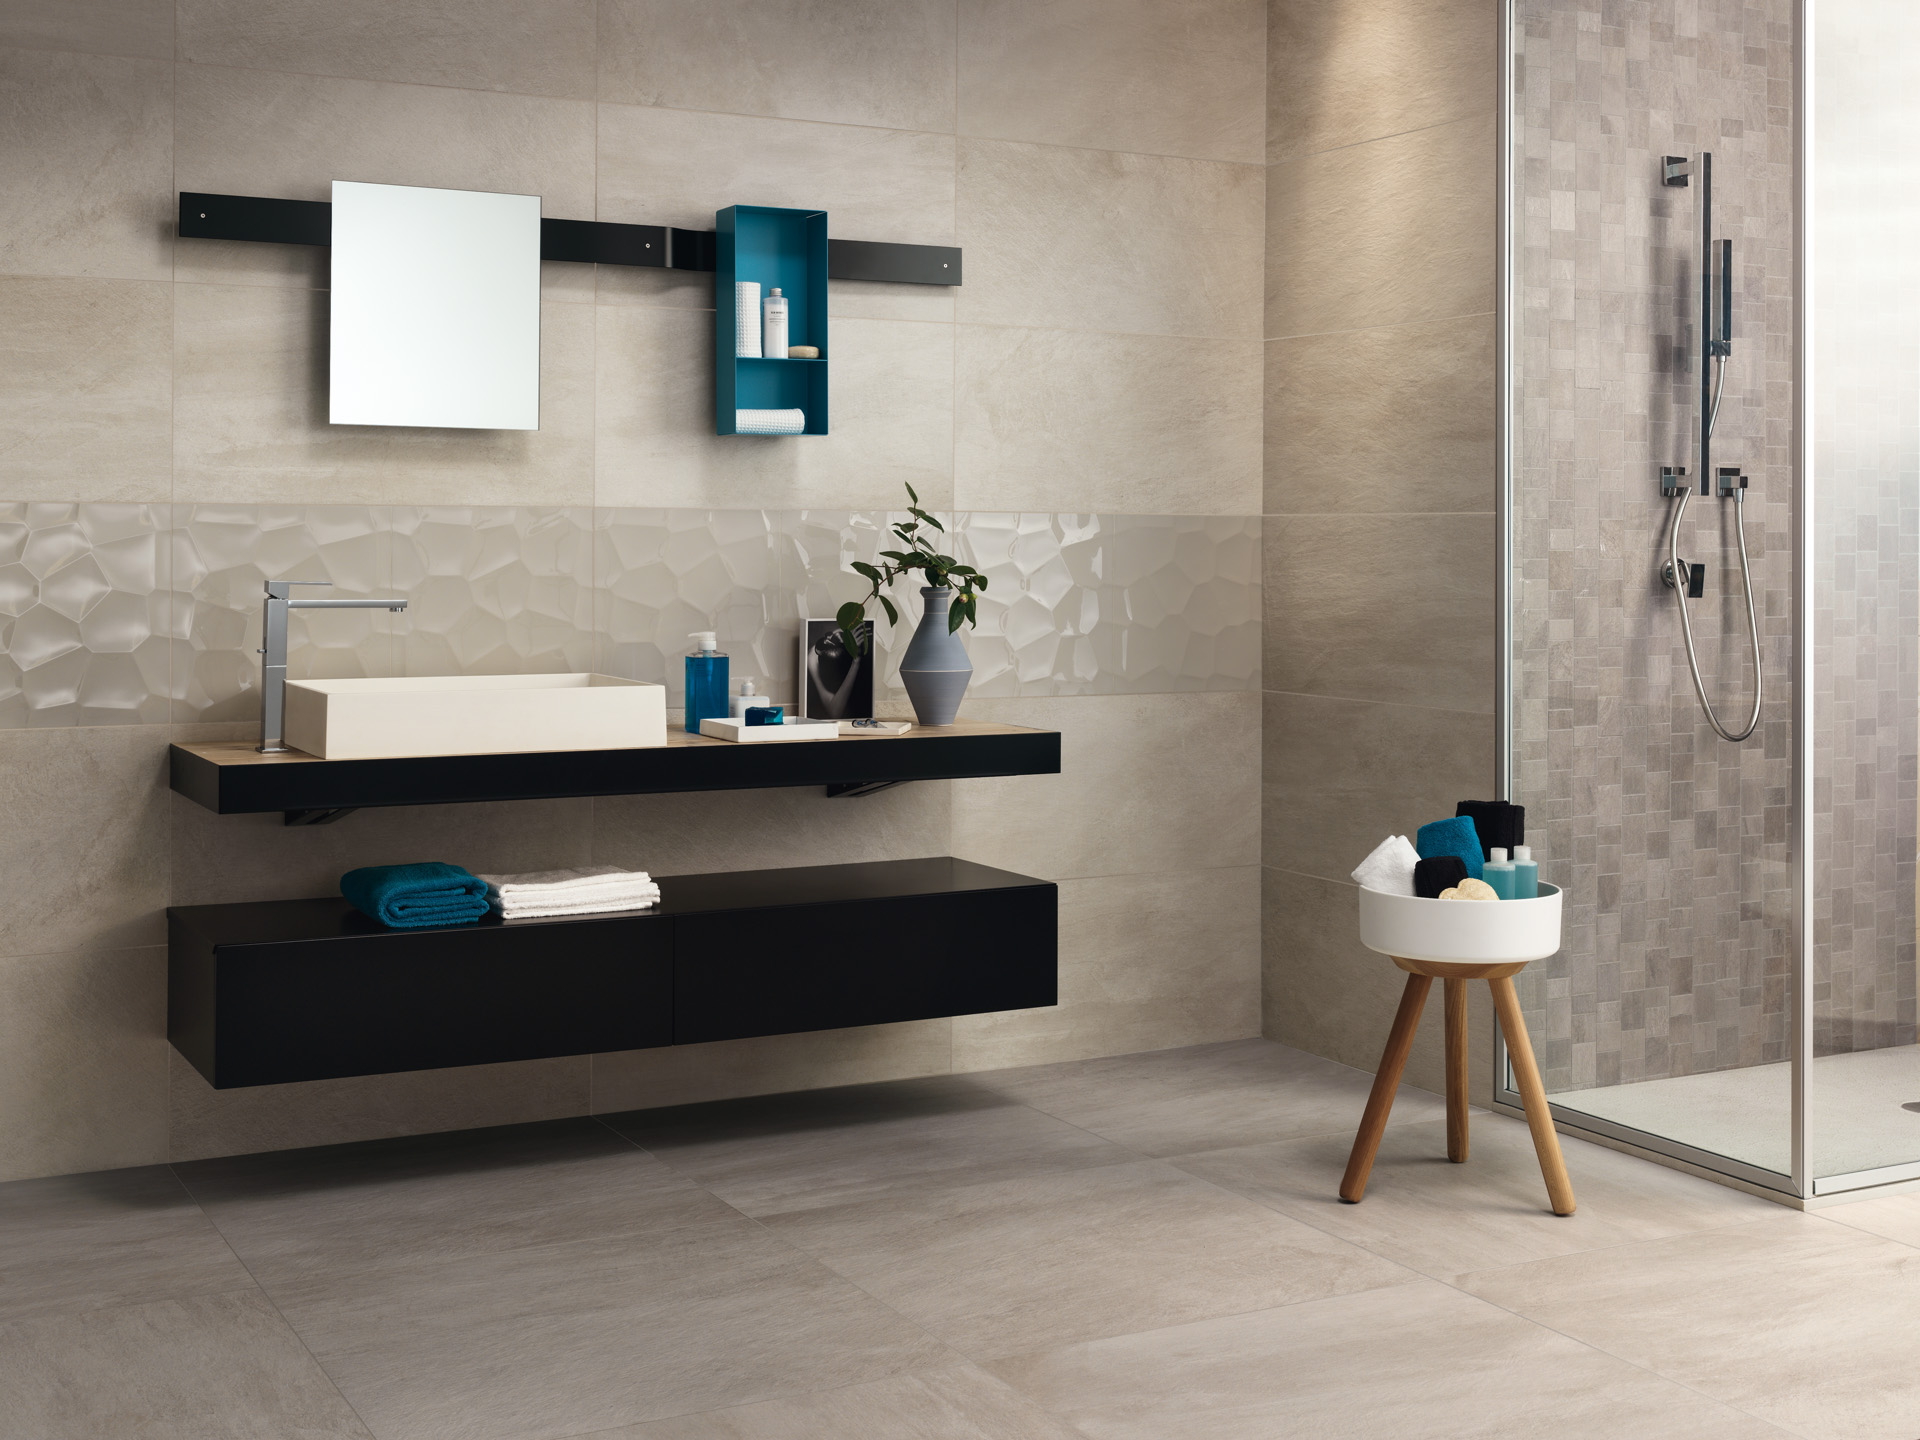 Ceramiche gardenia orchidea ceramic tiles floor and wall coverings in porcelain stoneware - Pavimento bagno grigio ...